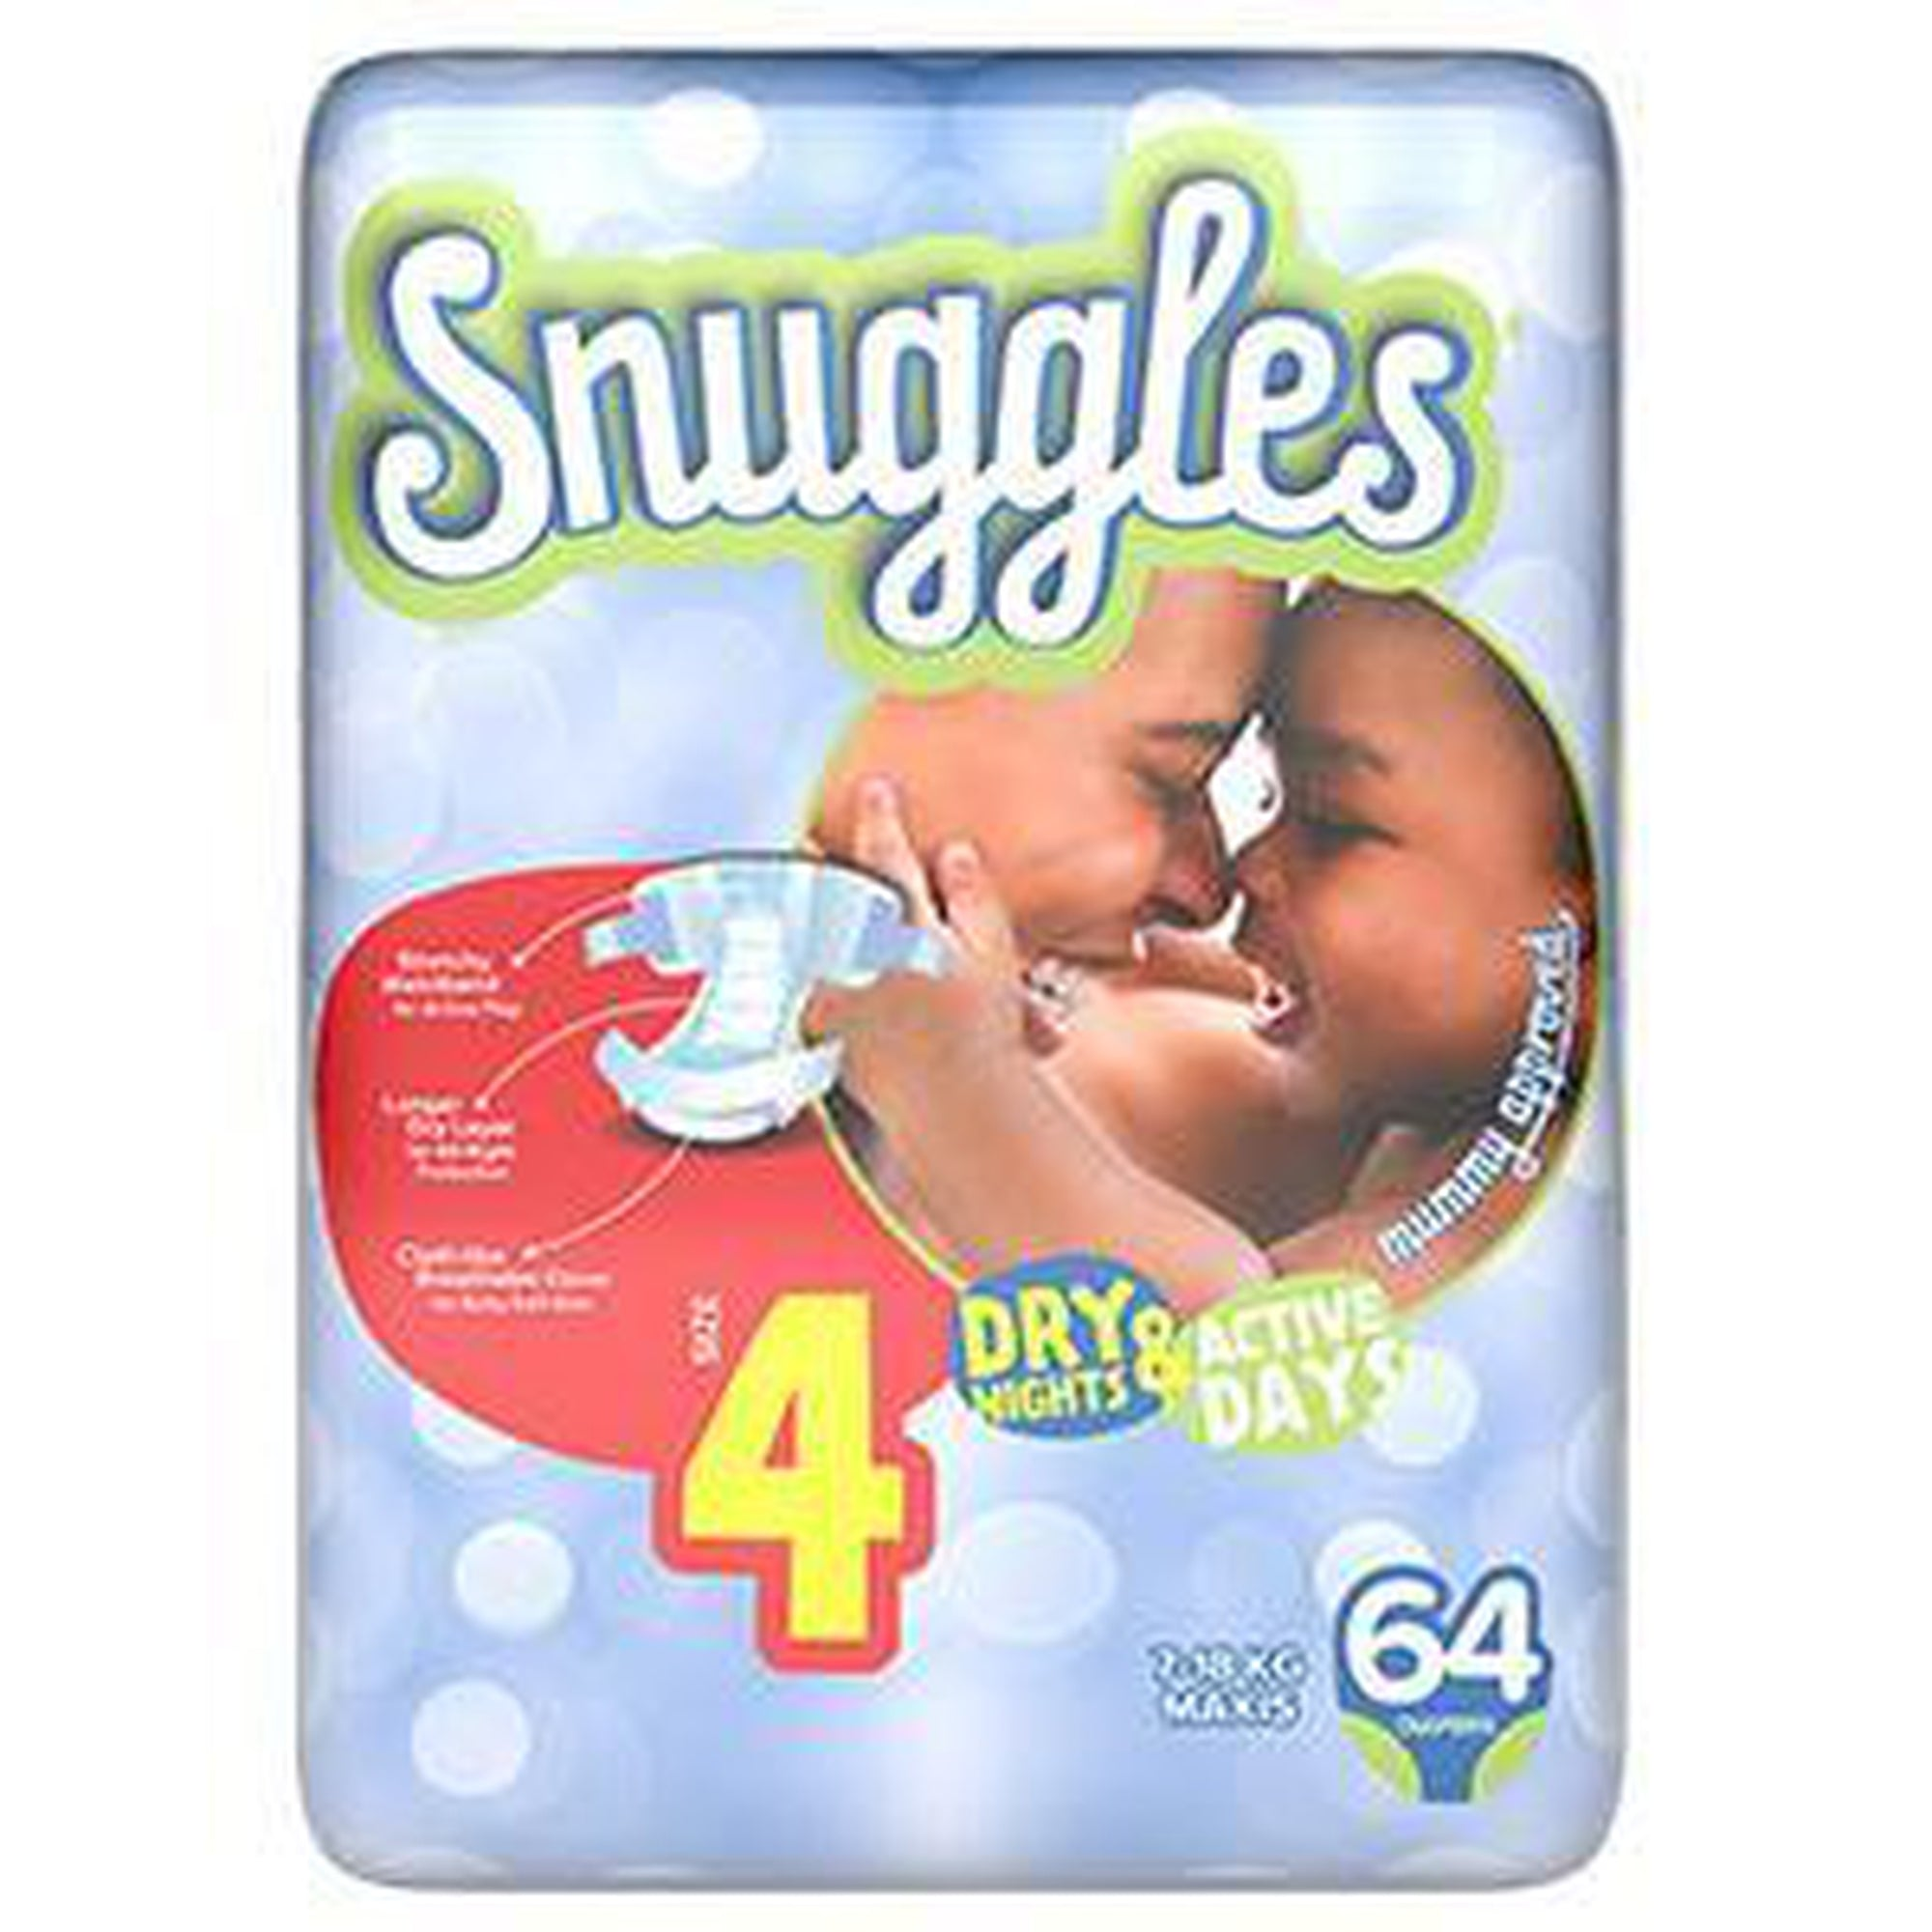 Snuggles Baby Diapers maxi (Size 4) 7-18Kg Jumbo Pack 64s-Diapers-Mother and Baby Shop Kenya's #1 Online Baby Shop